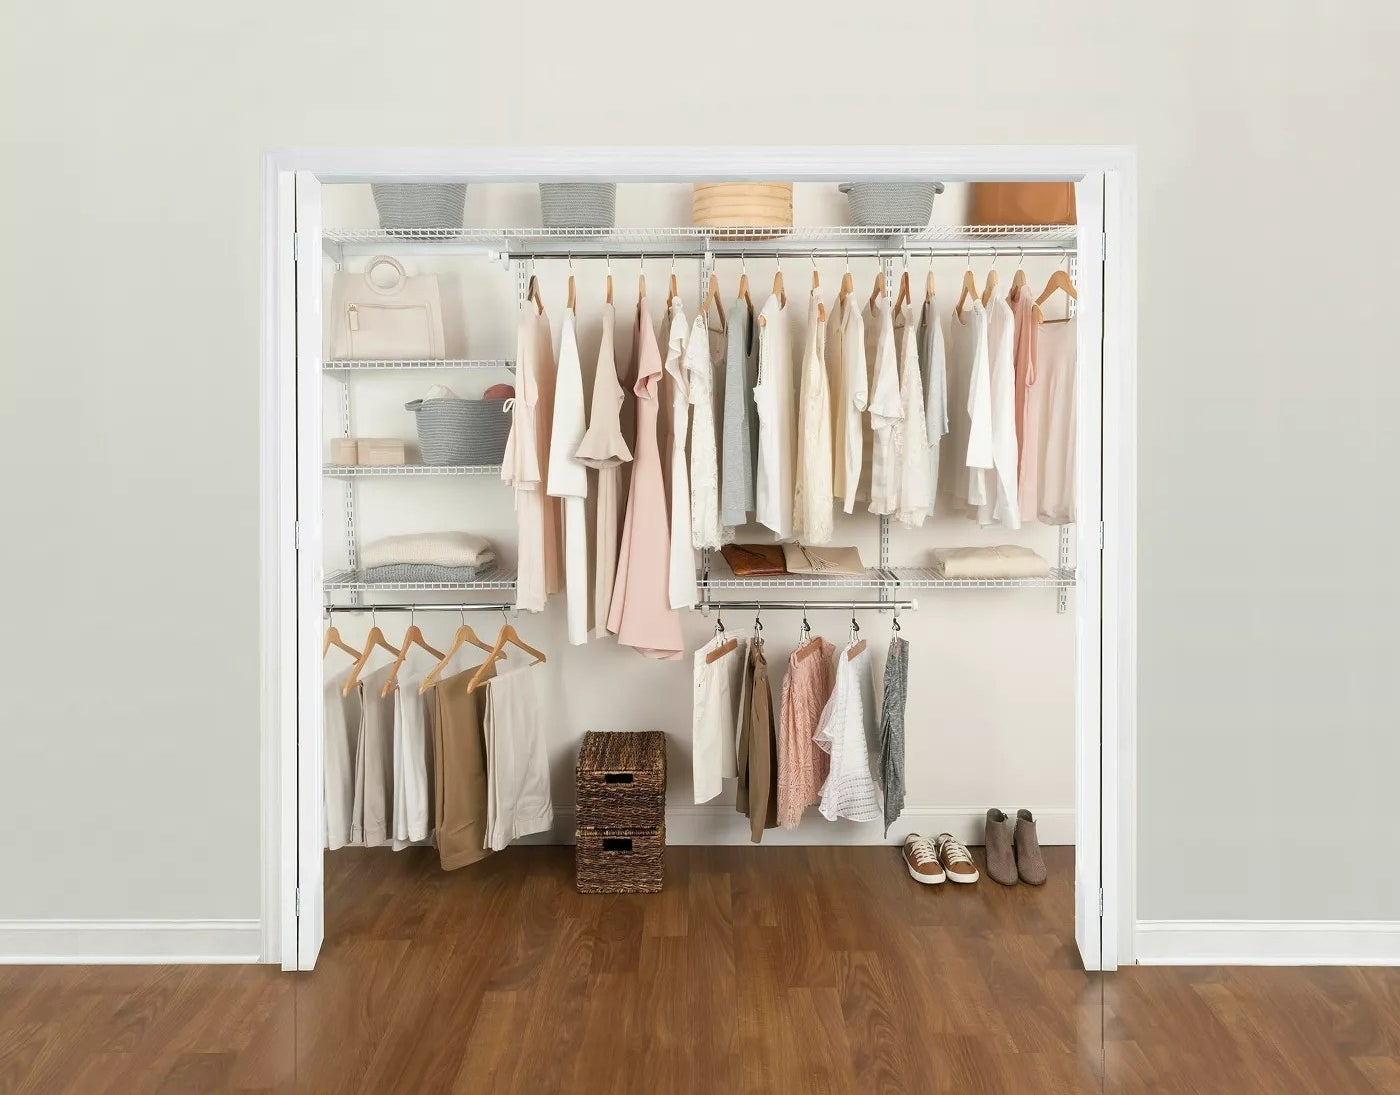 The closet configuration system